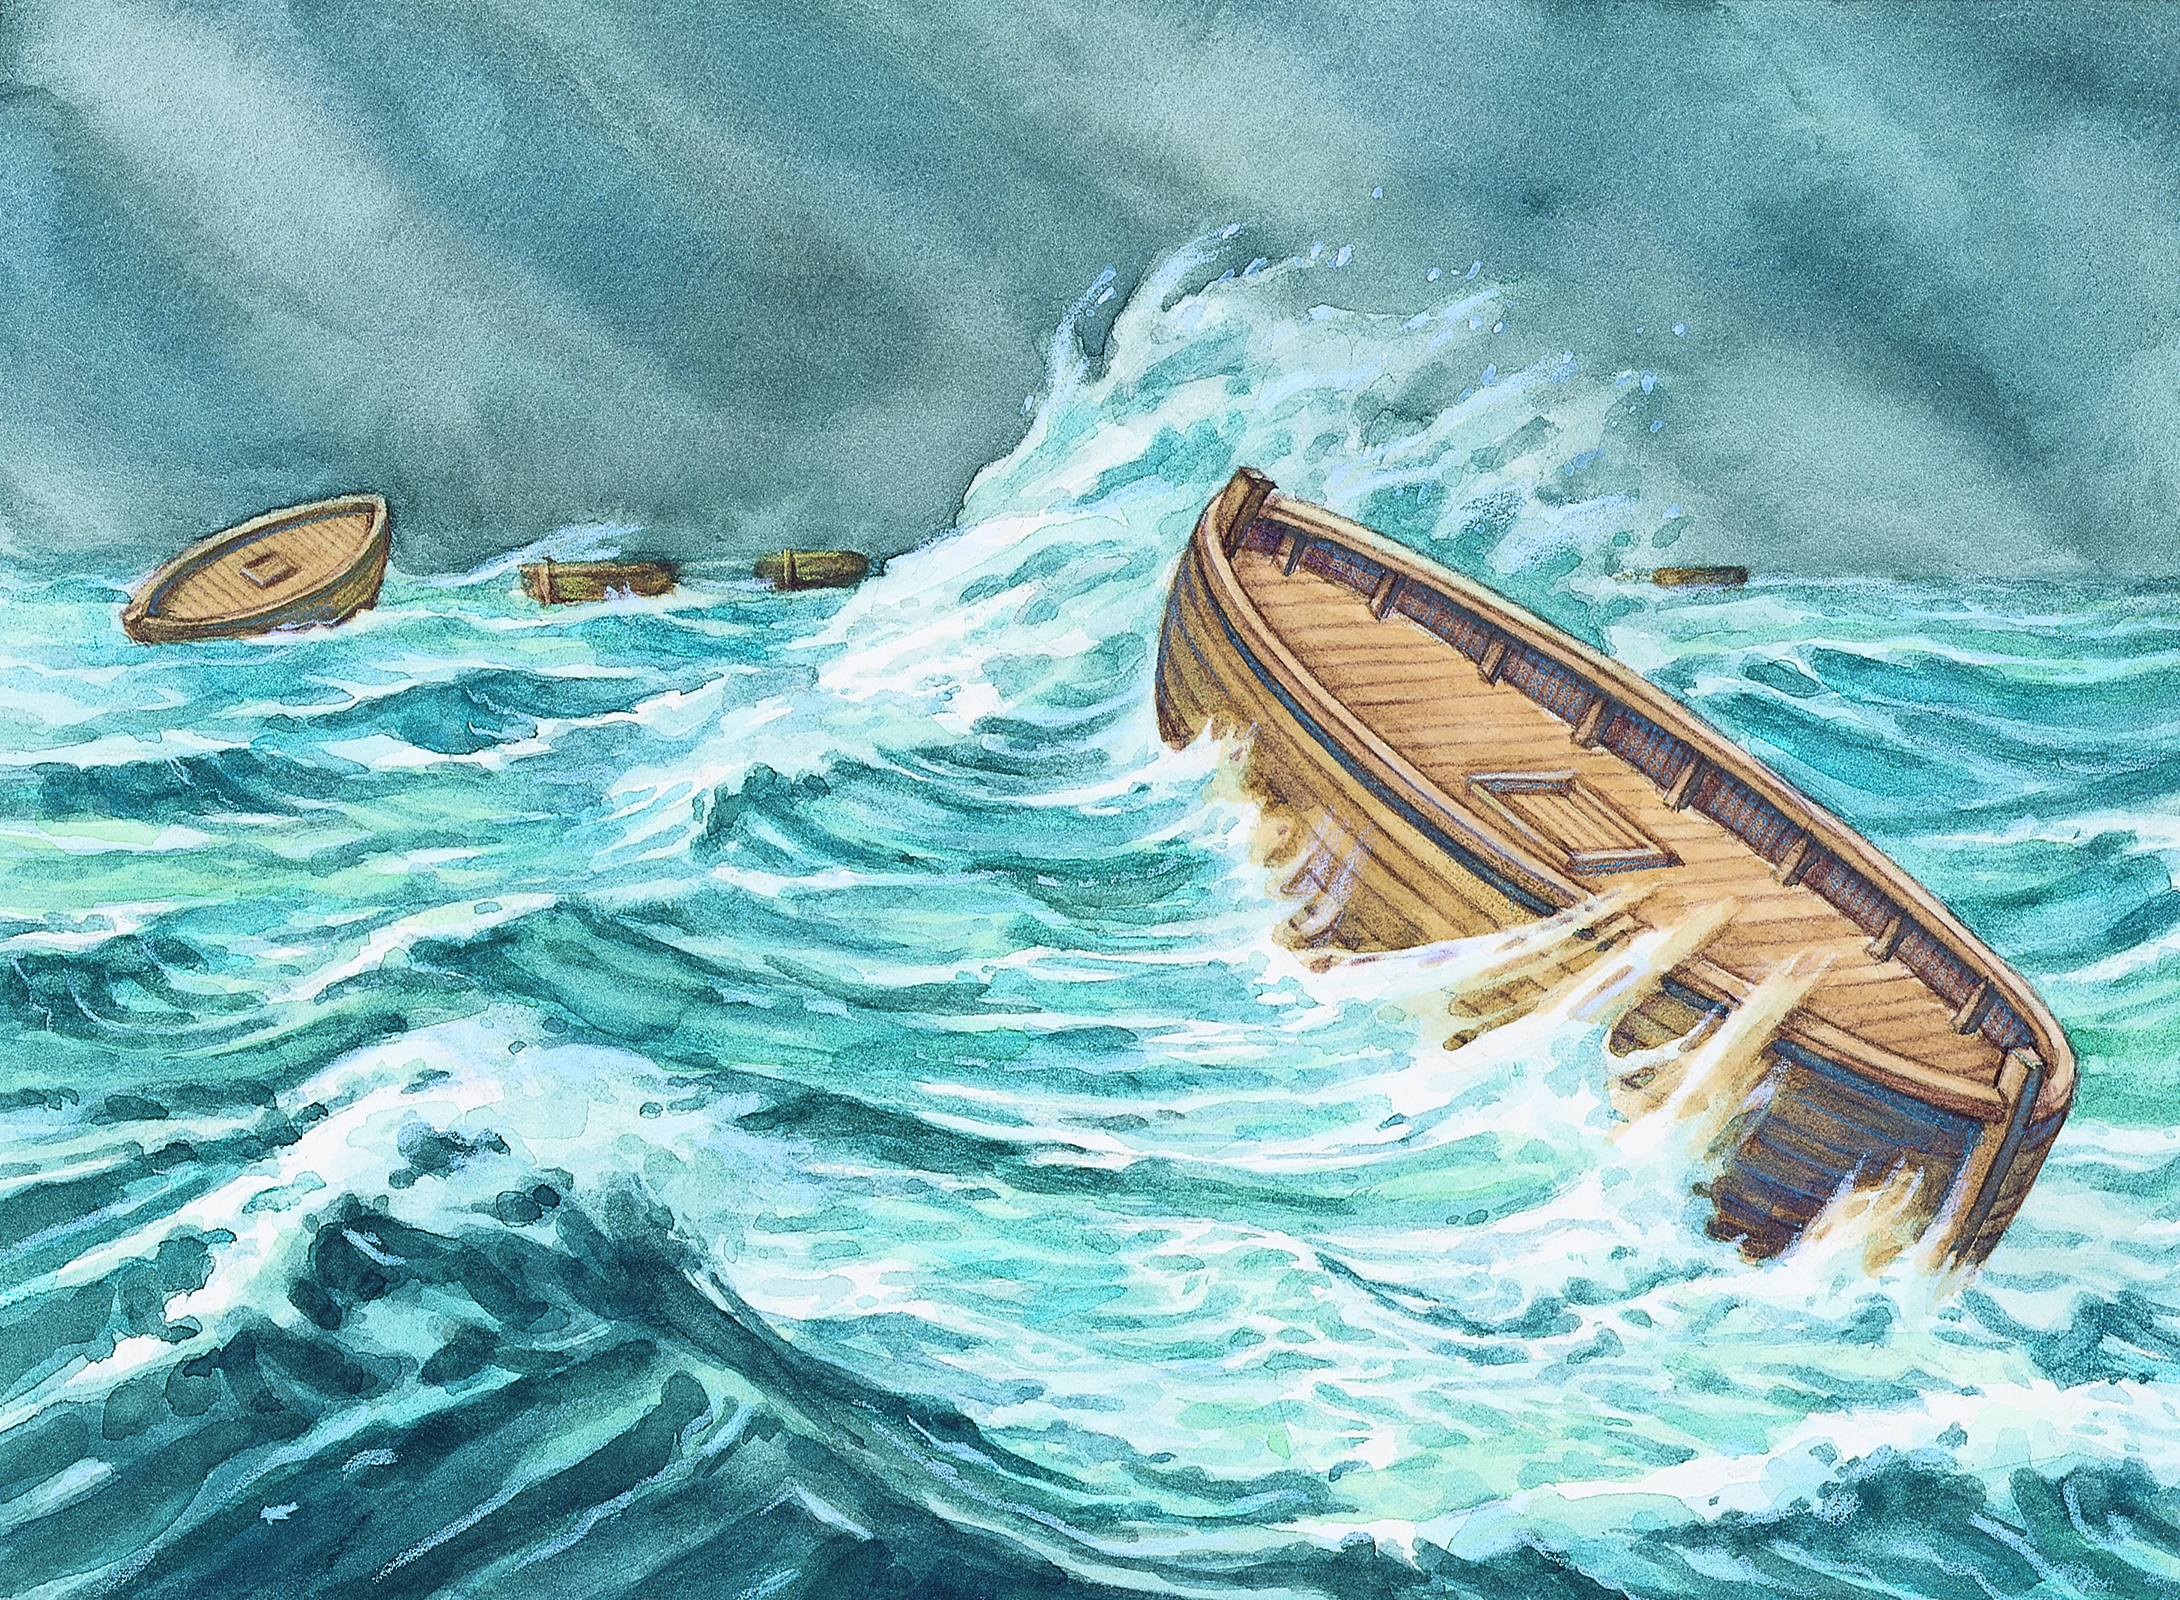 """Jaradite Barges - The book of Ether tells us that Jared and his brother built eight barges that were """"the length of a tree"""" and that they had no windows, just a door that when shut made the barges air and water tight. After complaining to God that there was no air in the barges God had the brother of Jared make an access hole in the top and bottom of each vessel so they could unstop whichever side was up to get air. With people and animals in a small cramped place for 344 days with no way to get rid of the waste, it would have been a disease ridden and filthy place."""